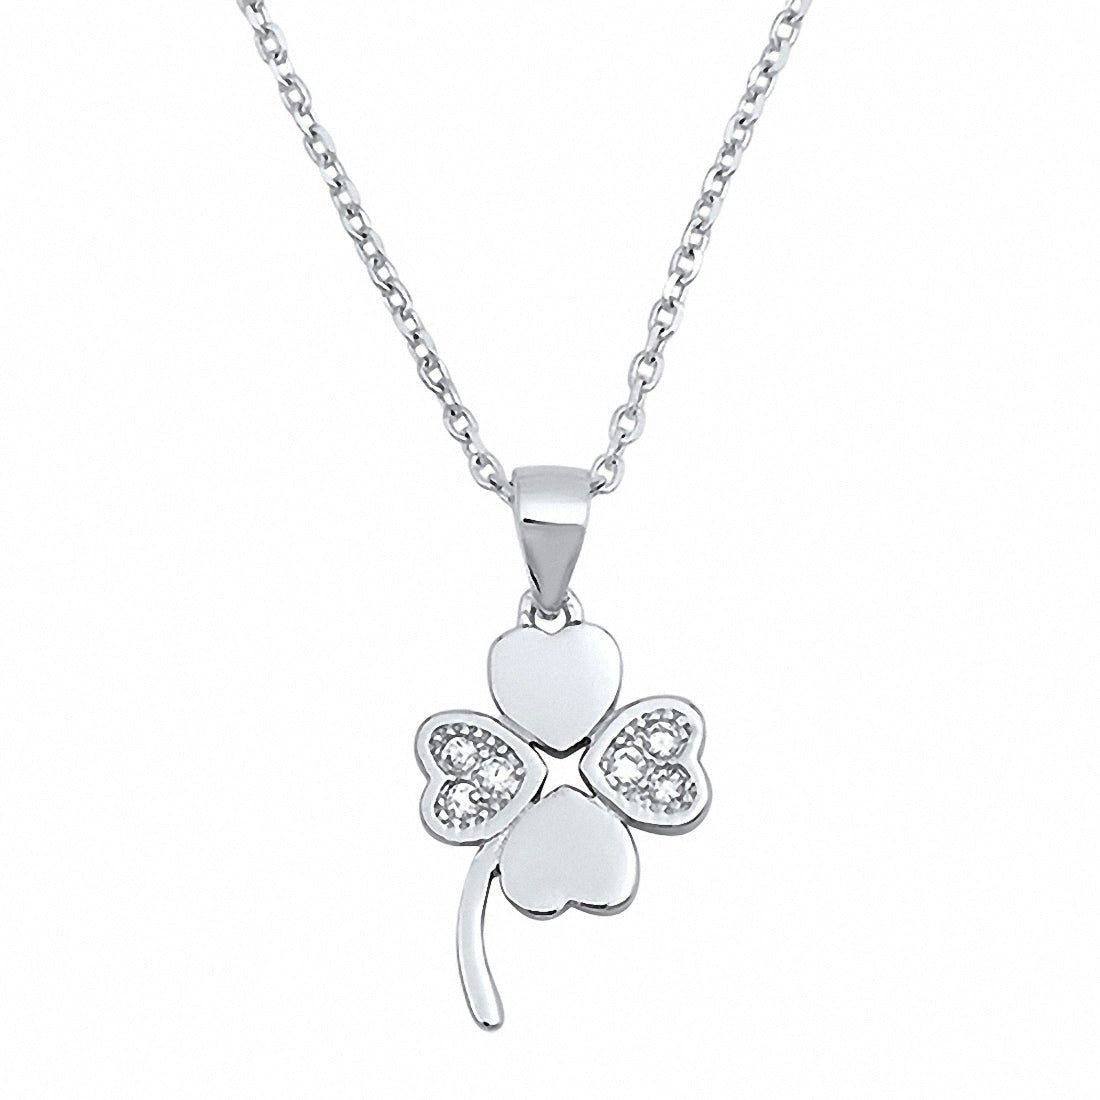 leaf clover york pendant new stripes sterling kigmay four necklace jewelry silver products green